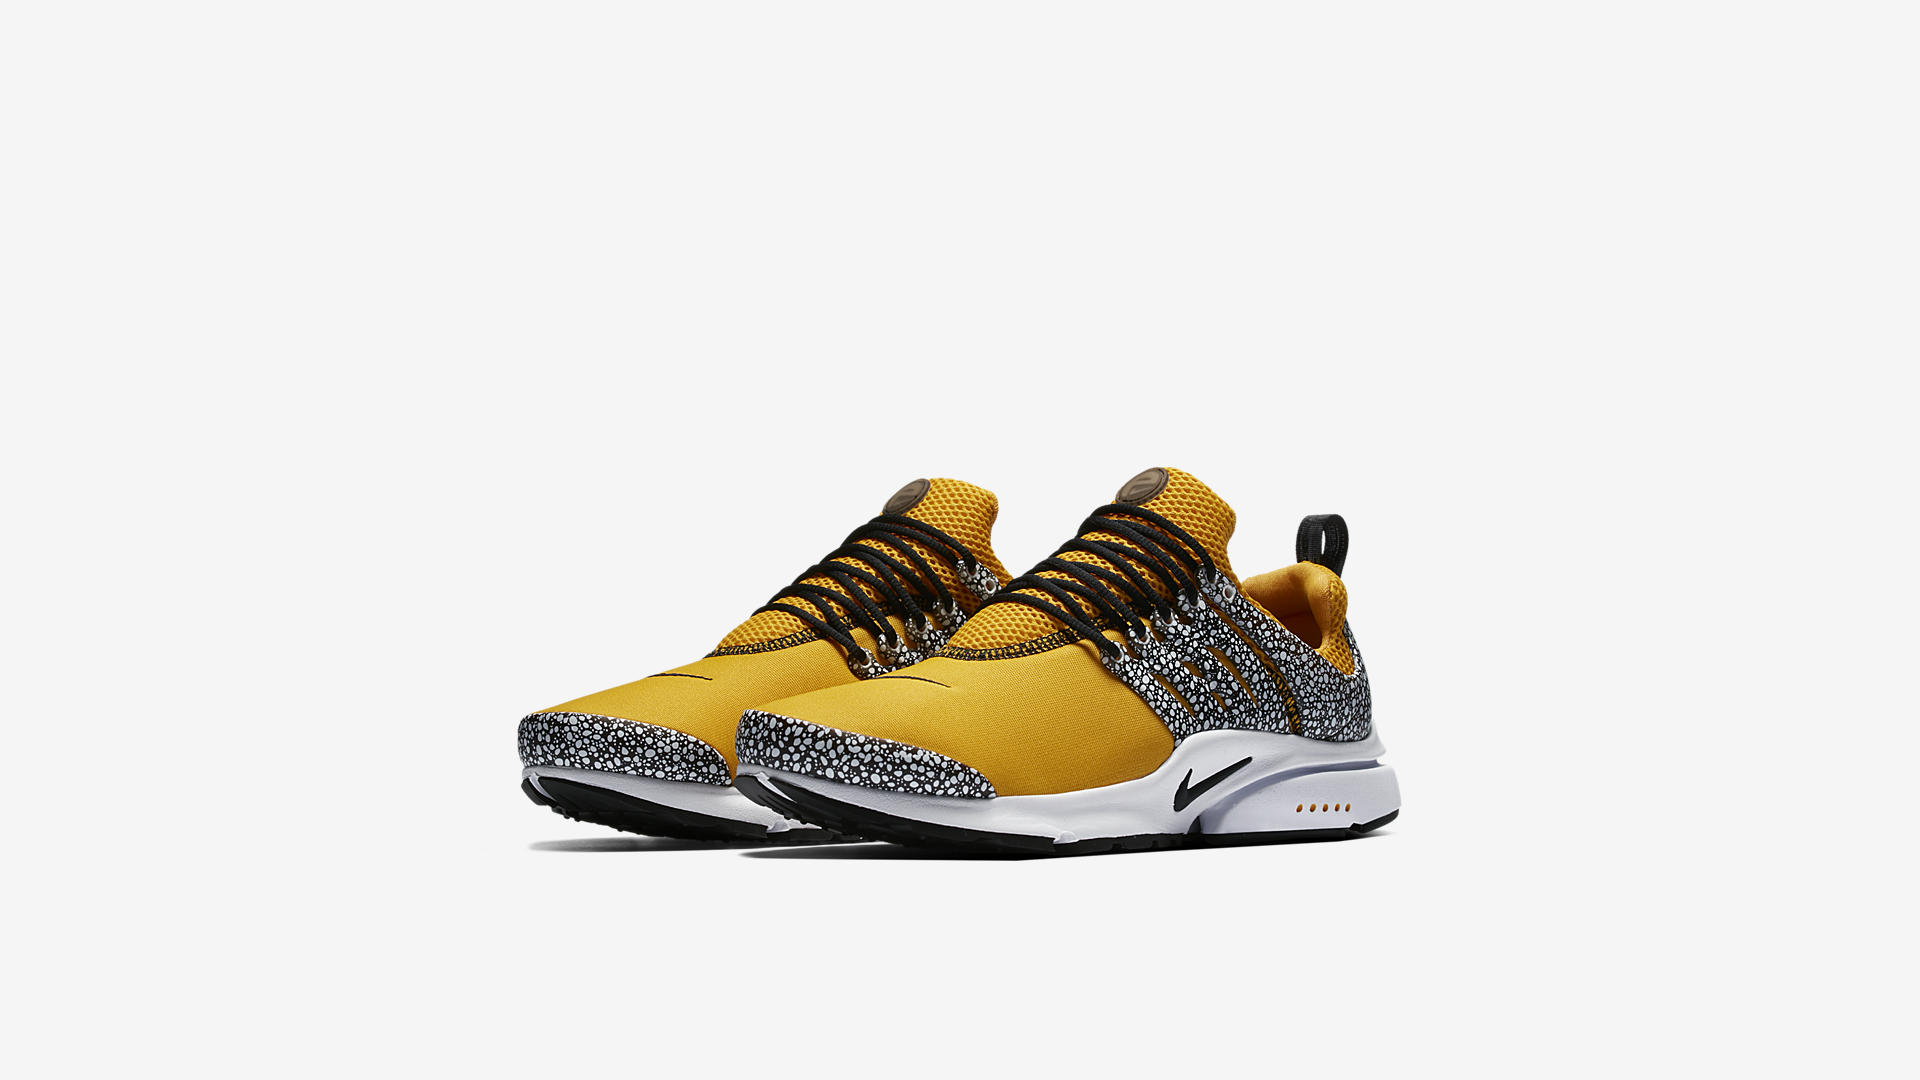 Nike Air Presto Gold Safari 886043 700 4